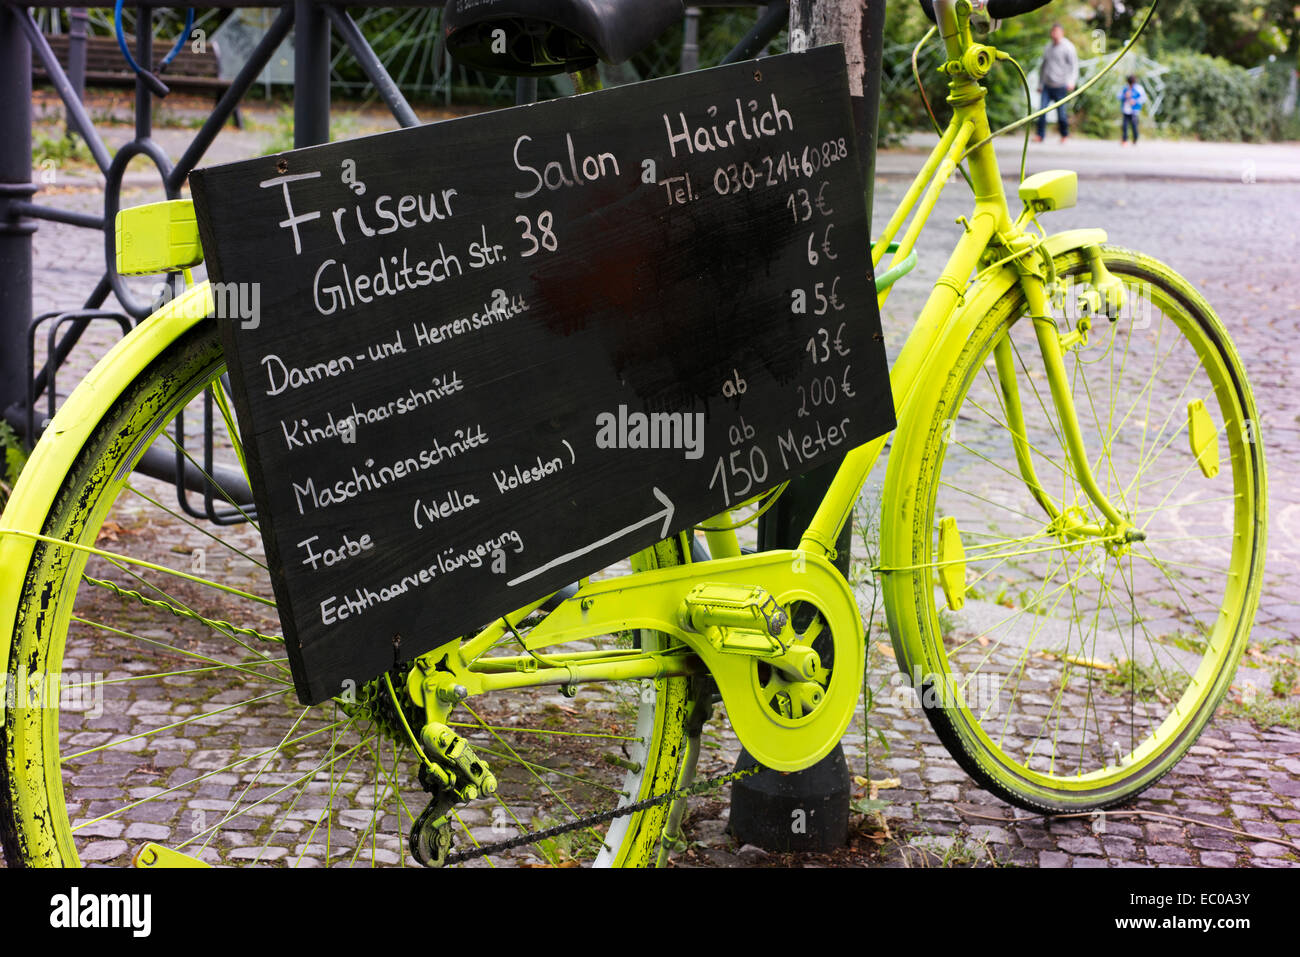 Luminescent paint on a bike used as part of a promotion for a Berlin hairdresser. - Stock Image